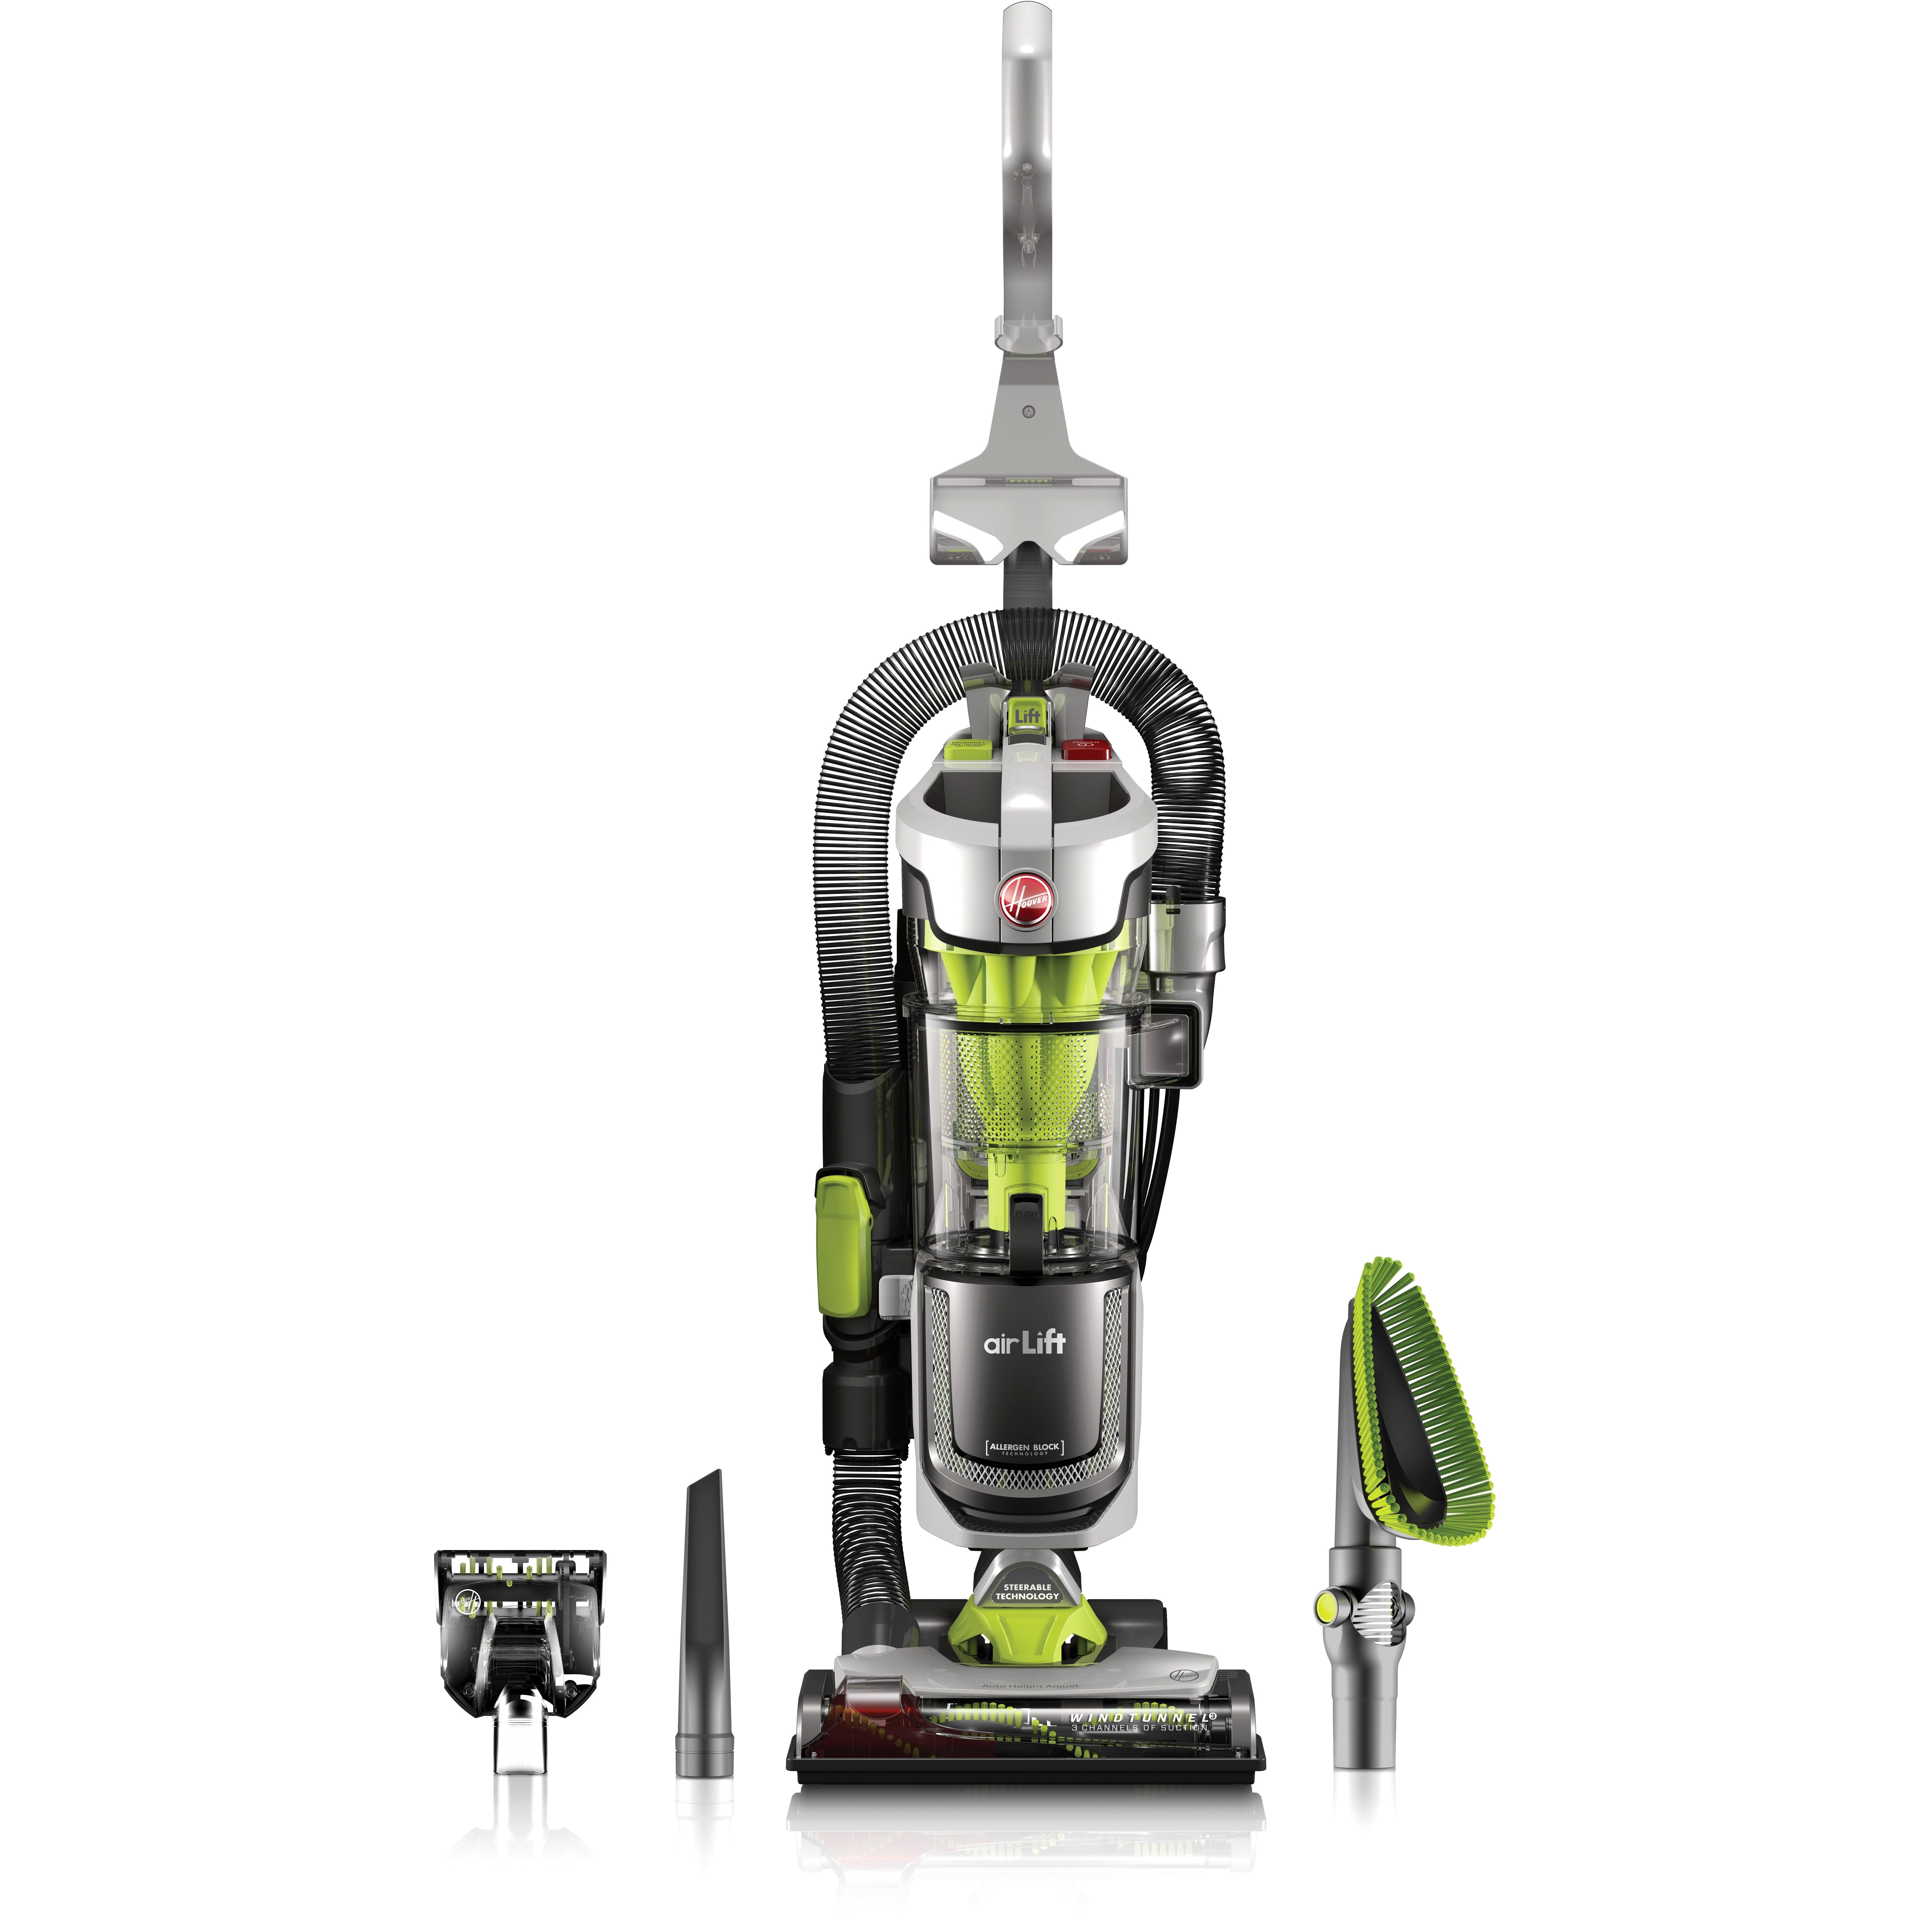 Air Lift Steerable Upright Vacuum by Techtronic Industries Co. Ltd